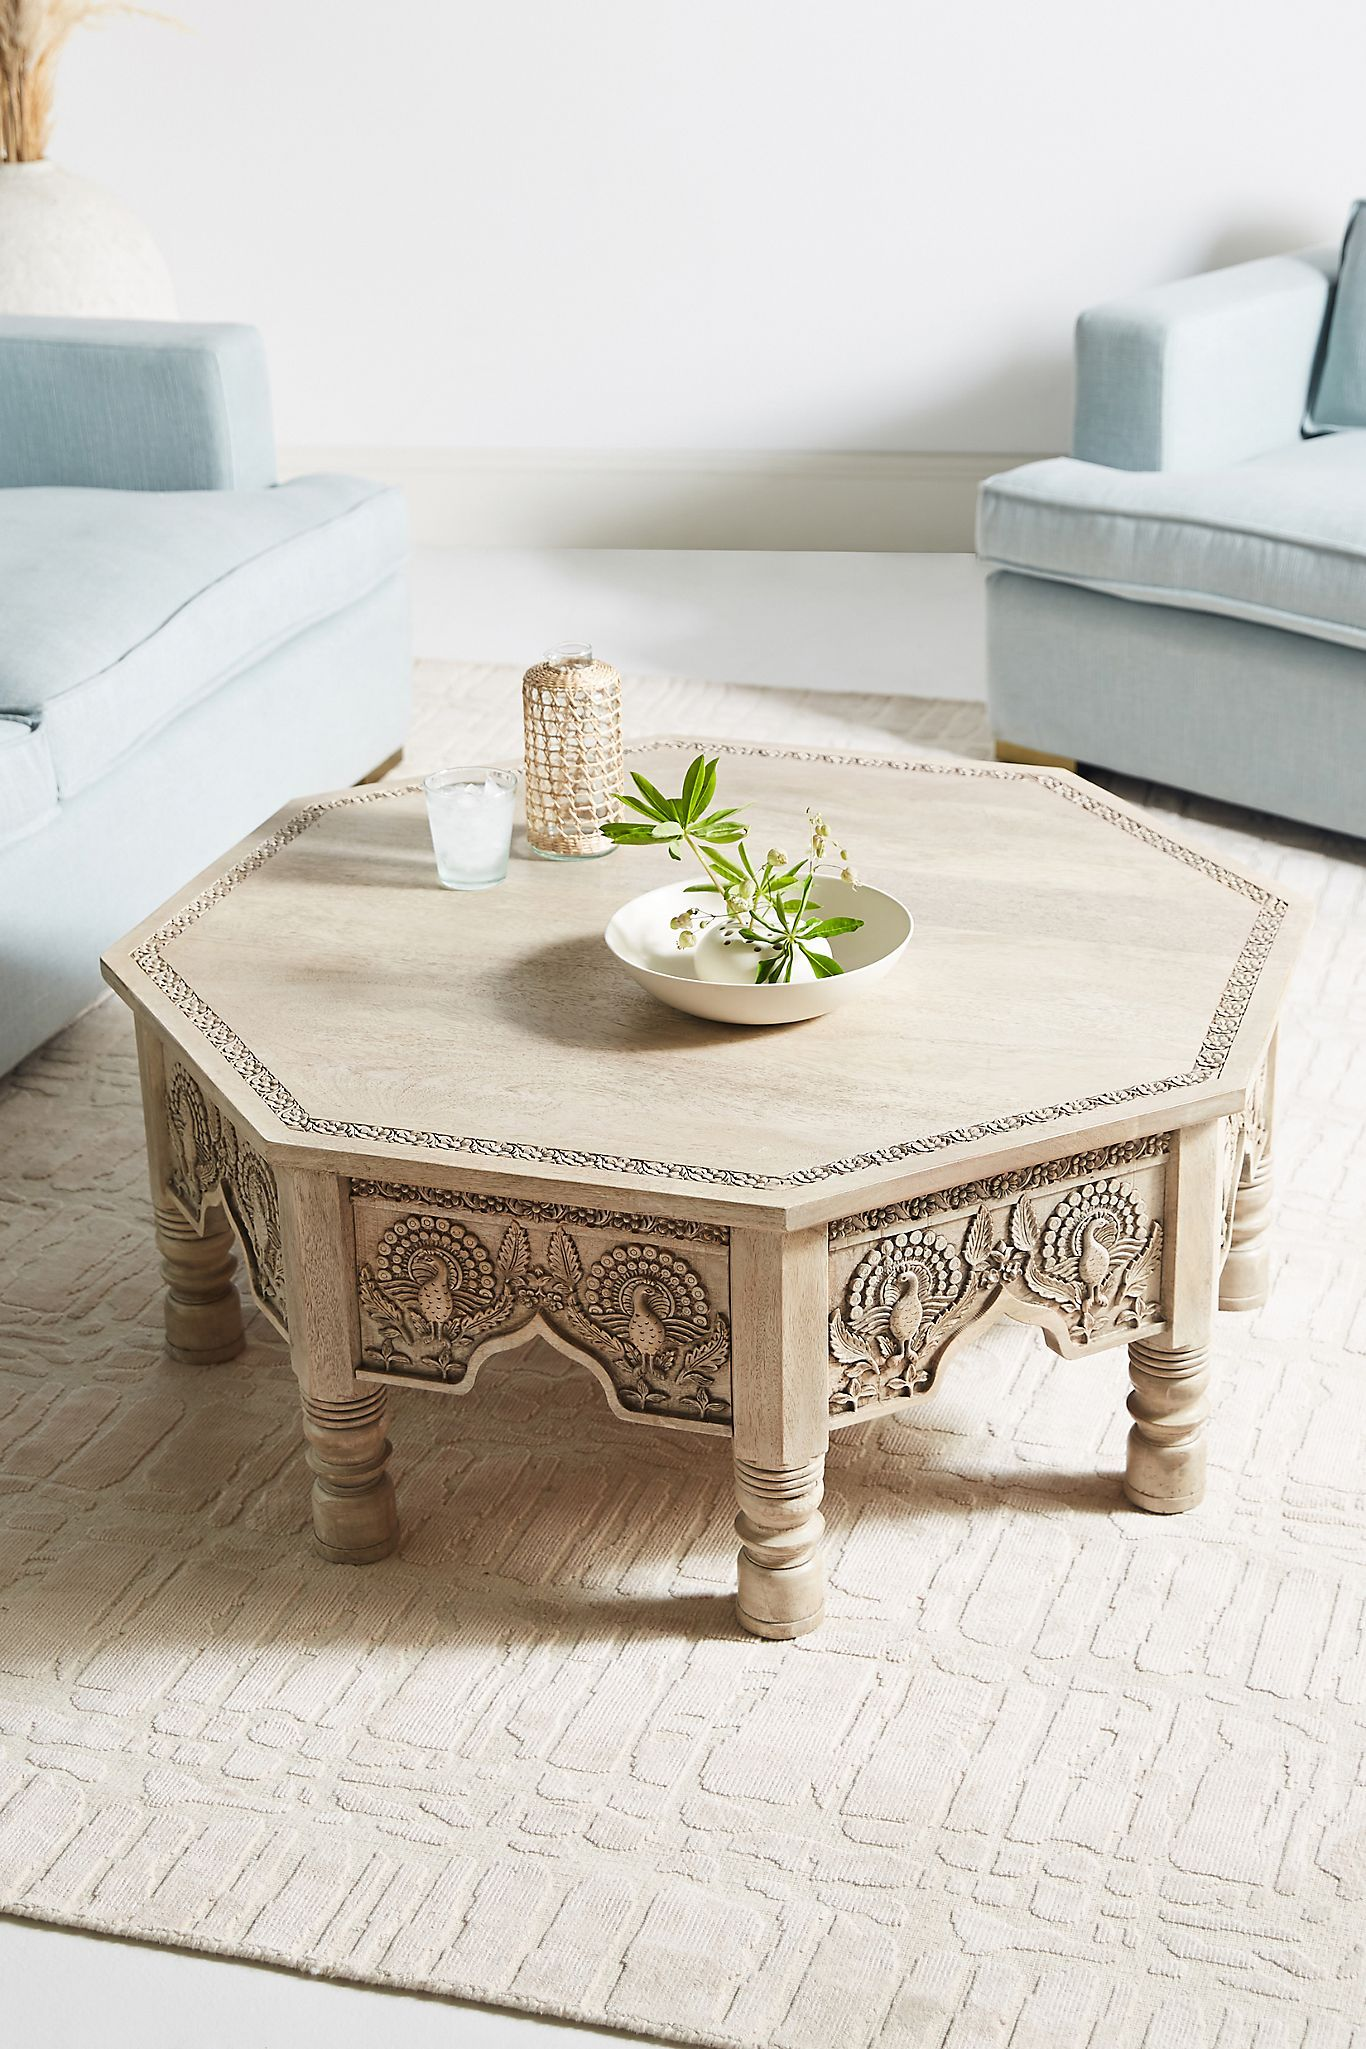 Moroccan Style Coffee Table 50 Off Coffee Table With Storage Coffee Table Living Room Storage [ 2049 x 1366 Pixel ]